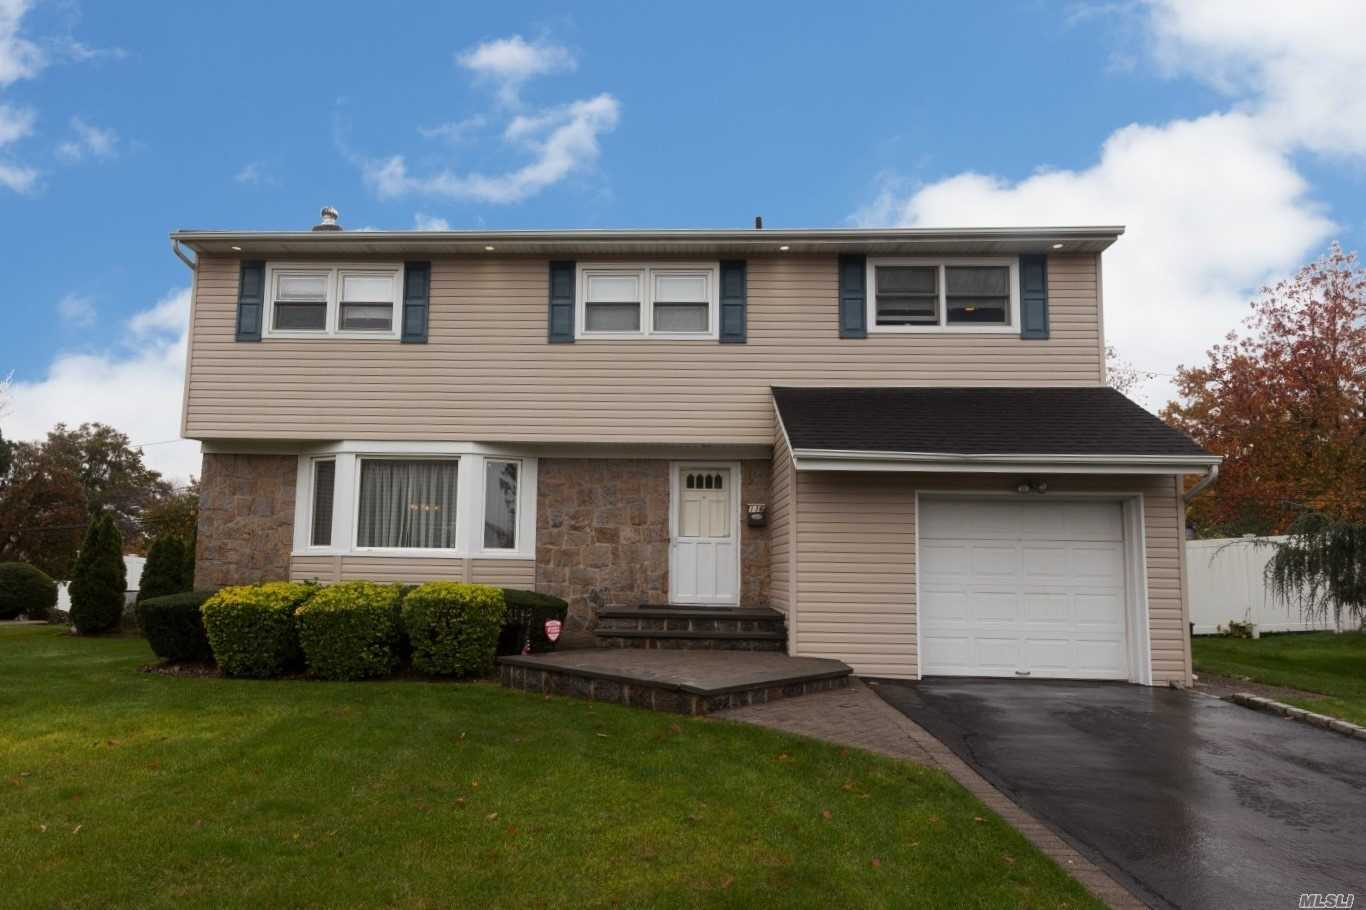 House for sale Jericho, NY 116 Orleans Ln